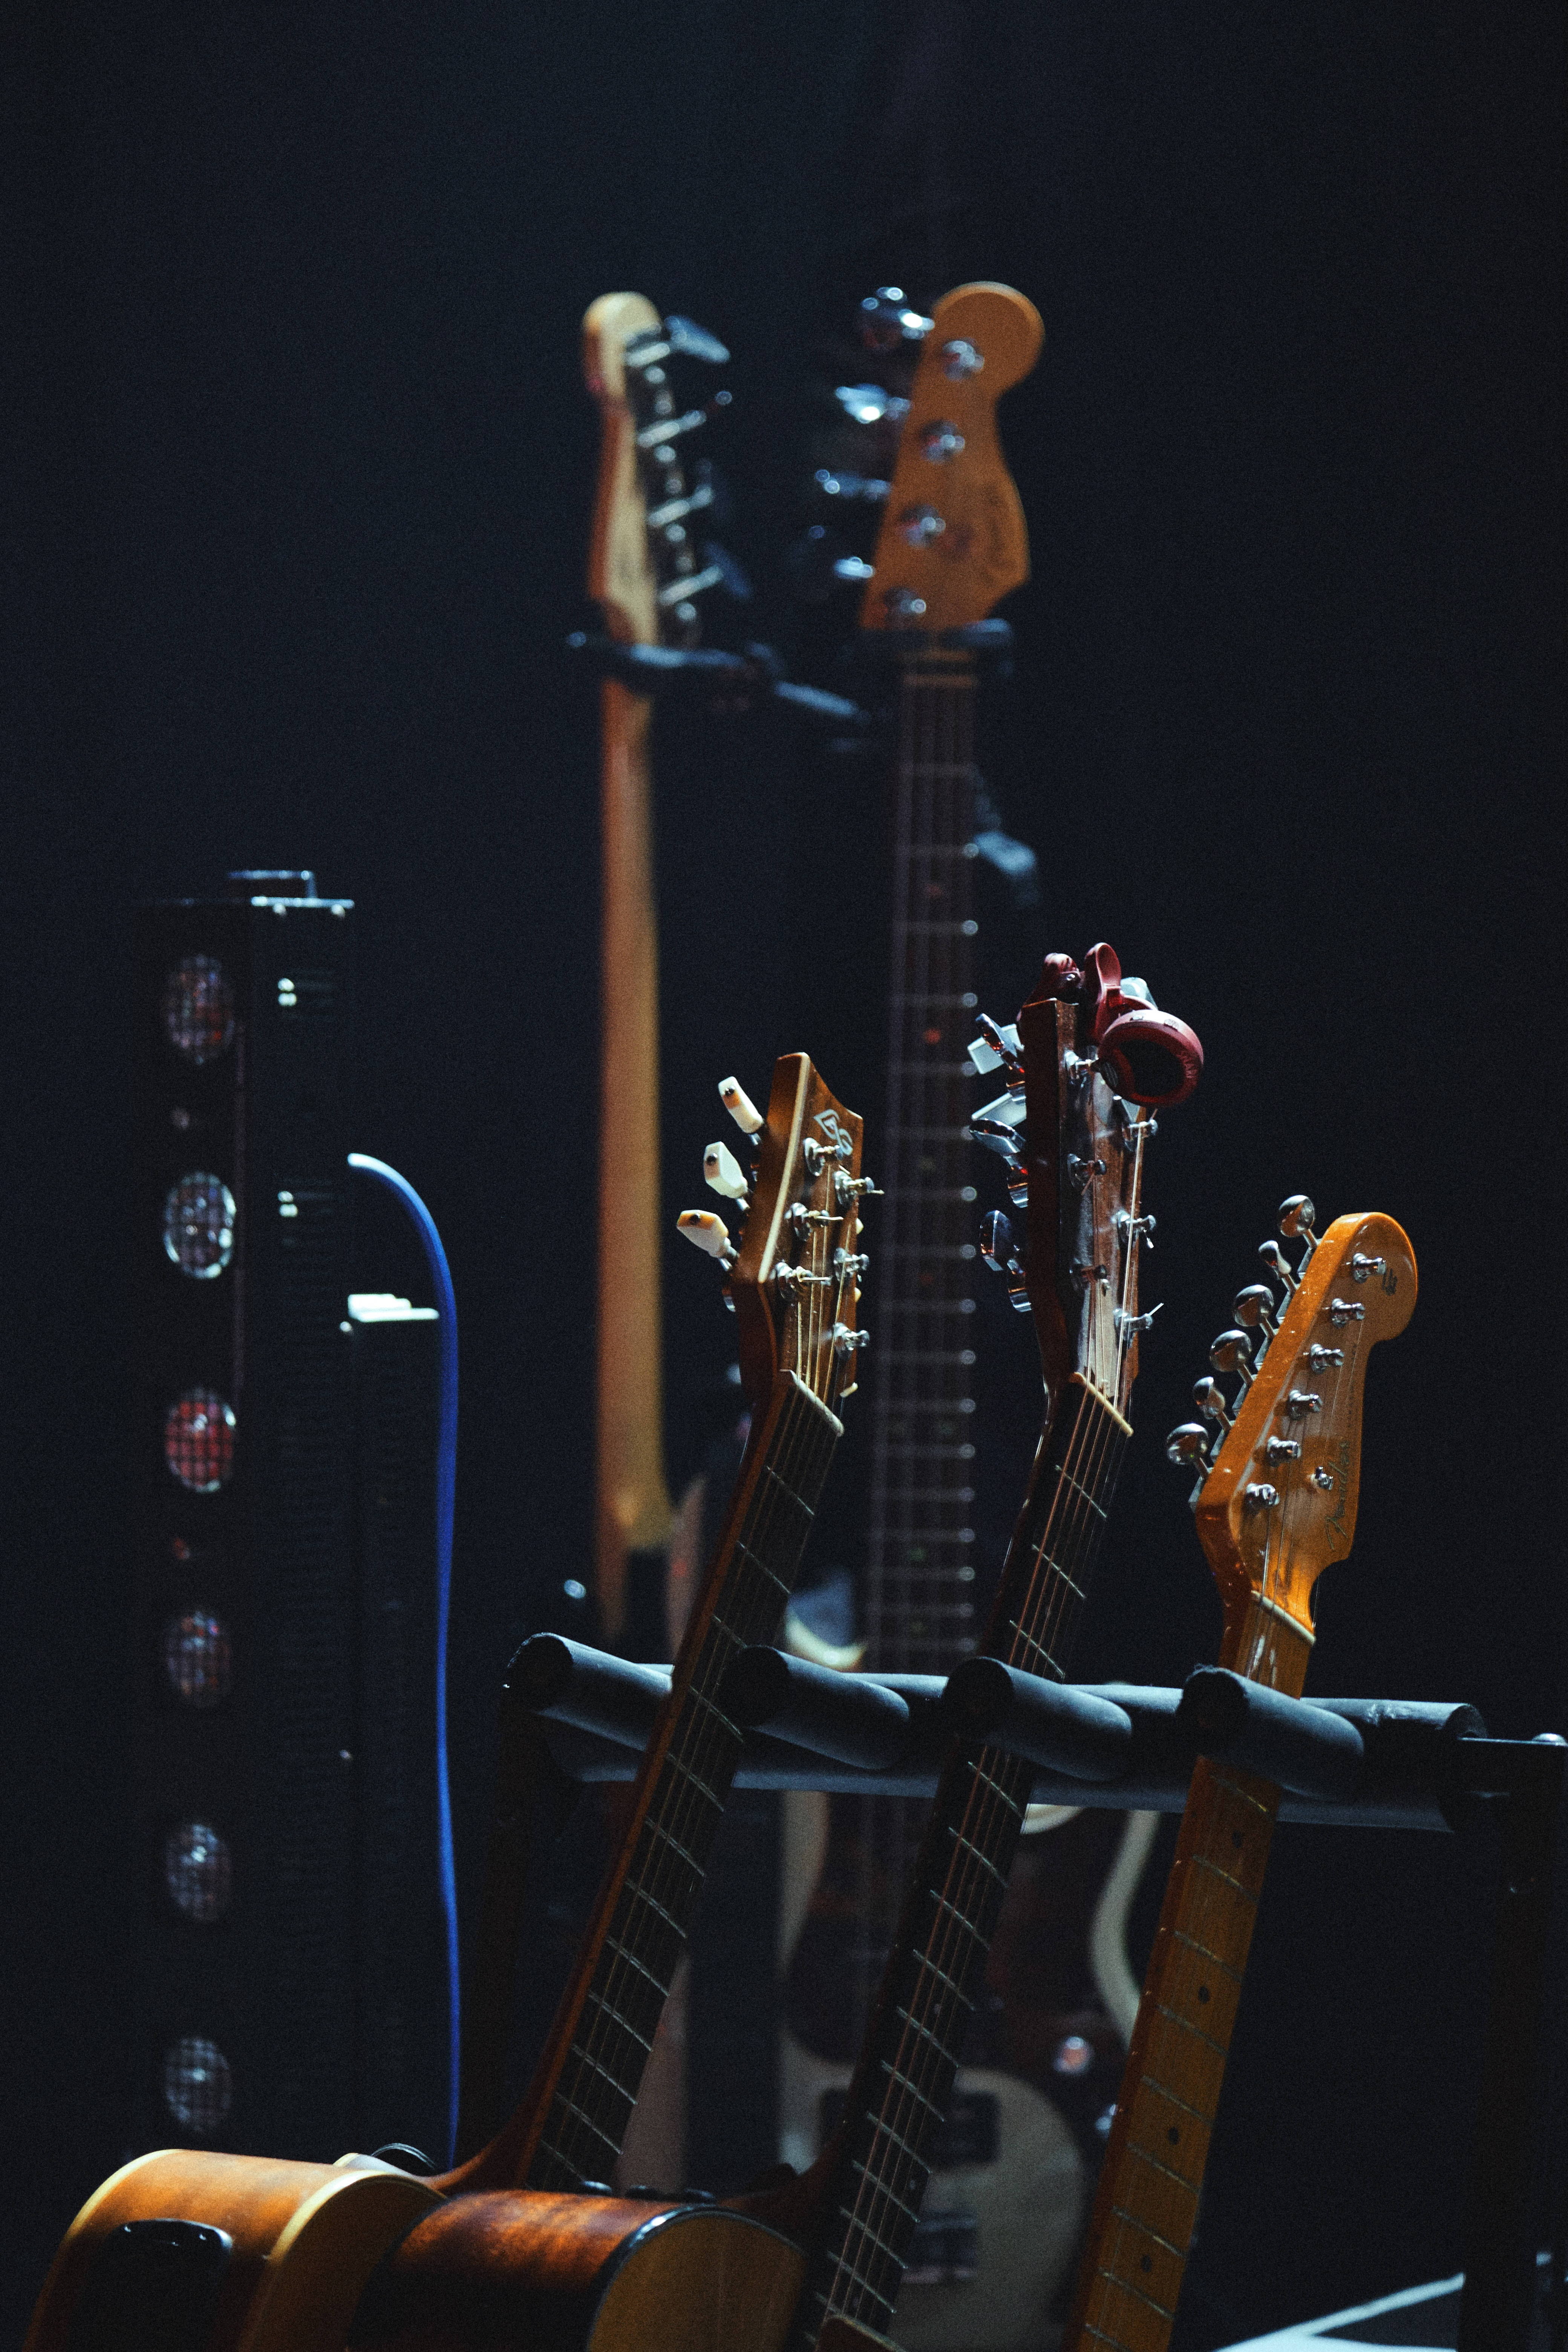 60514 download wallpaper Music, Guitars, Strings, Musical Strings, Vultures screensavers and pictures for free